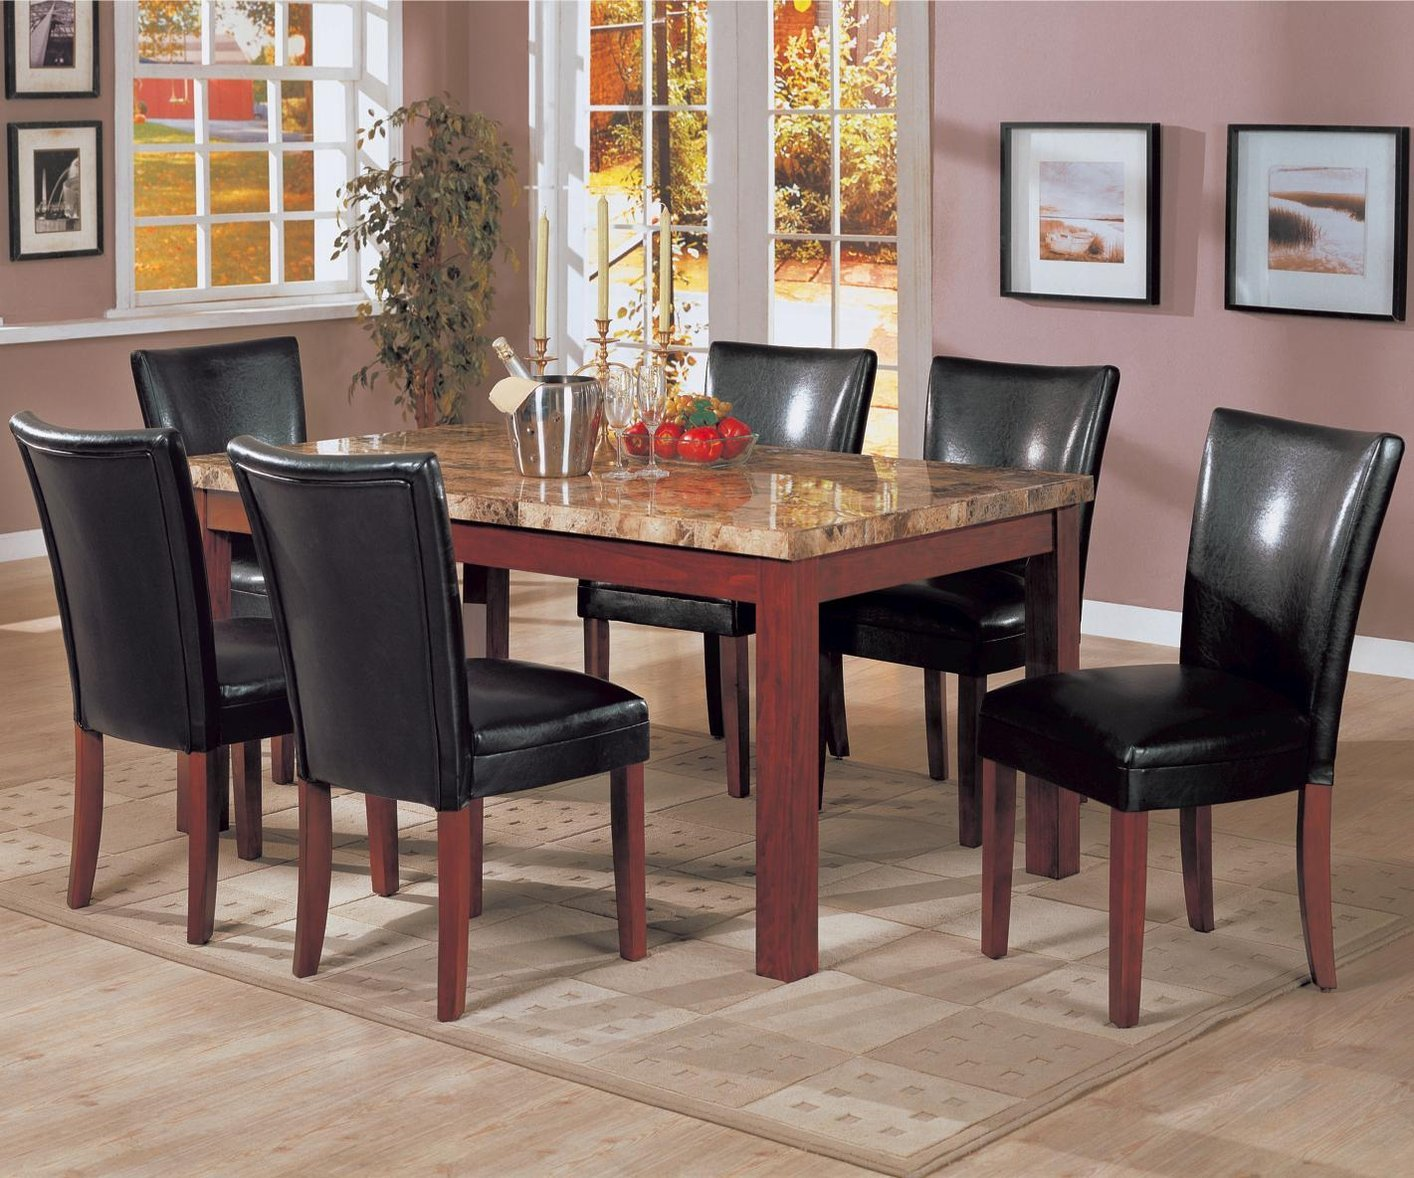 Coaster 120311 Brown Marble Dining Table Steal A Sofa Furniture Outlet Los